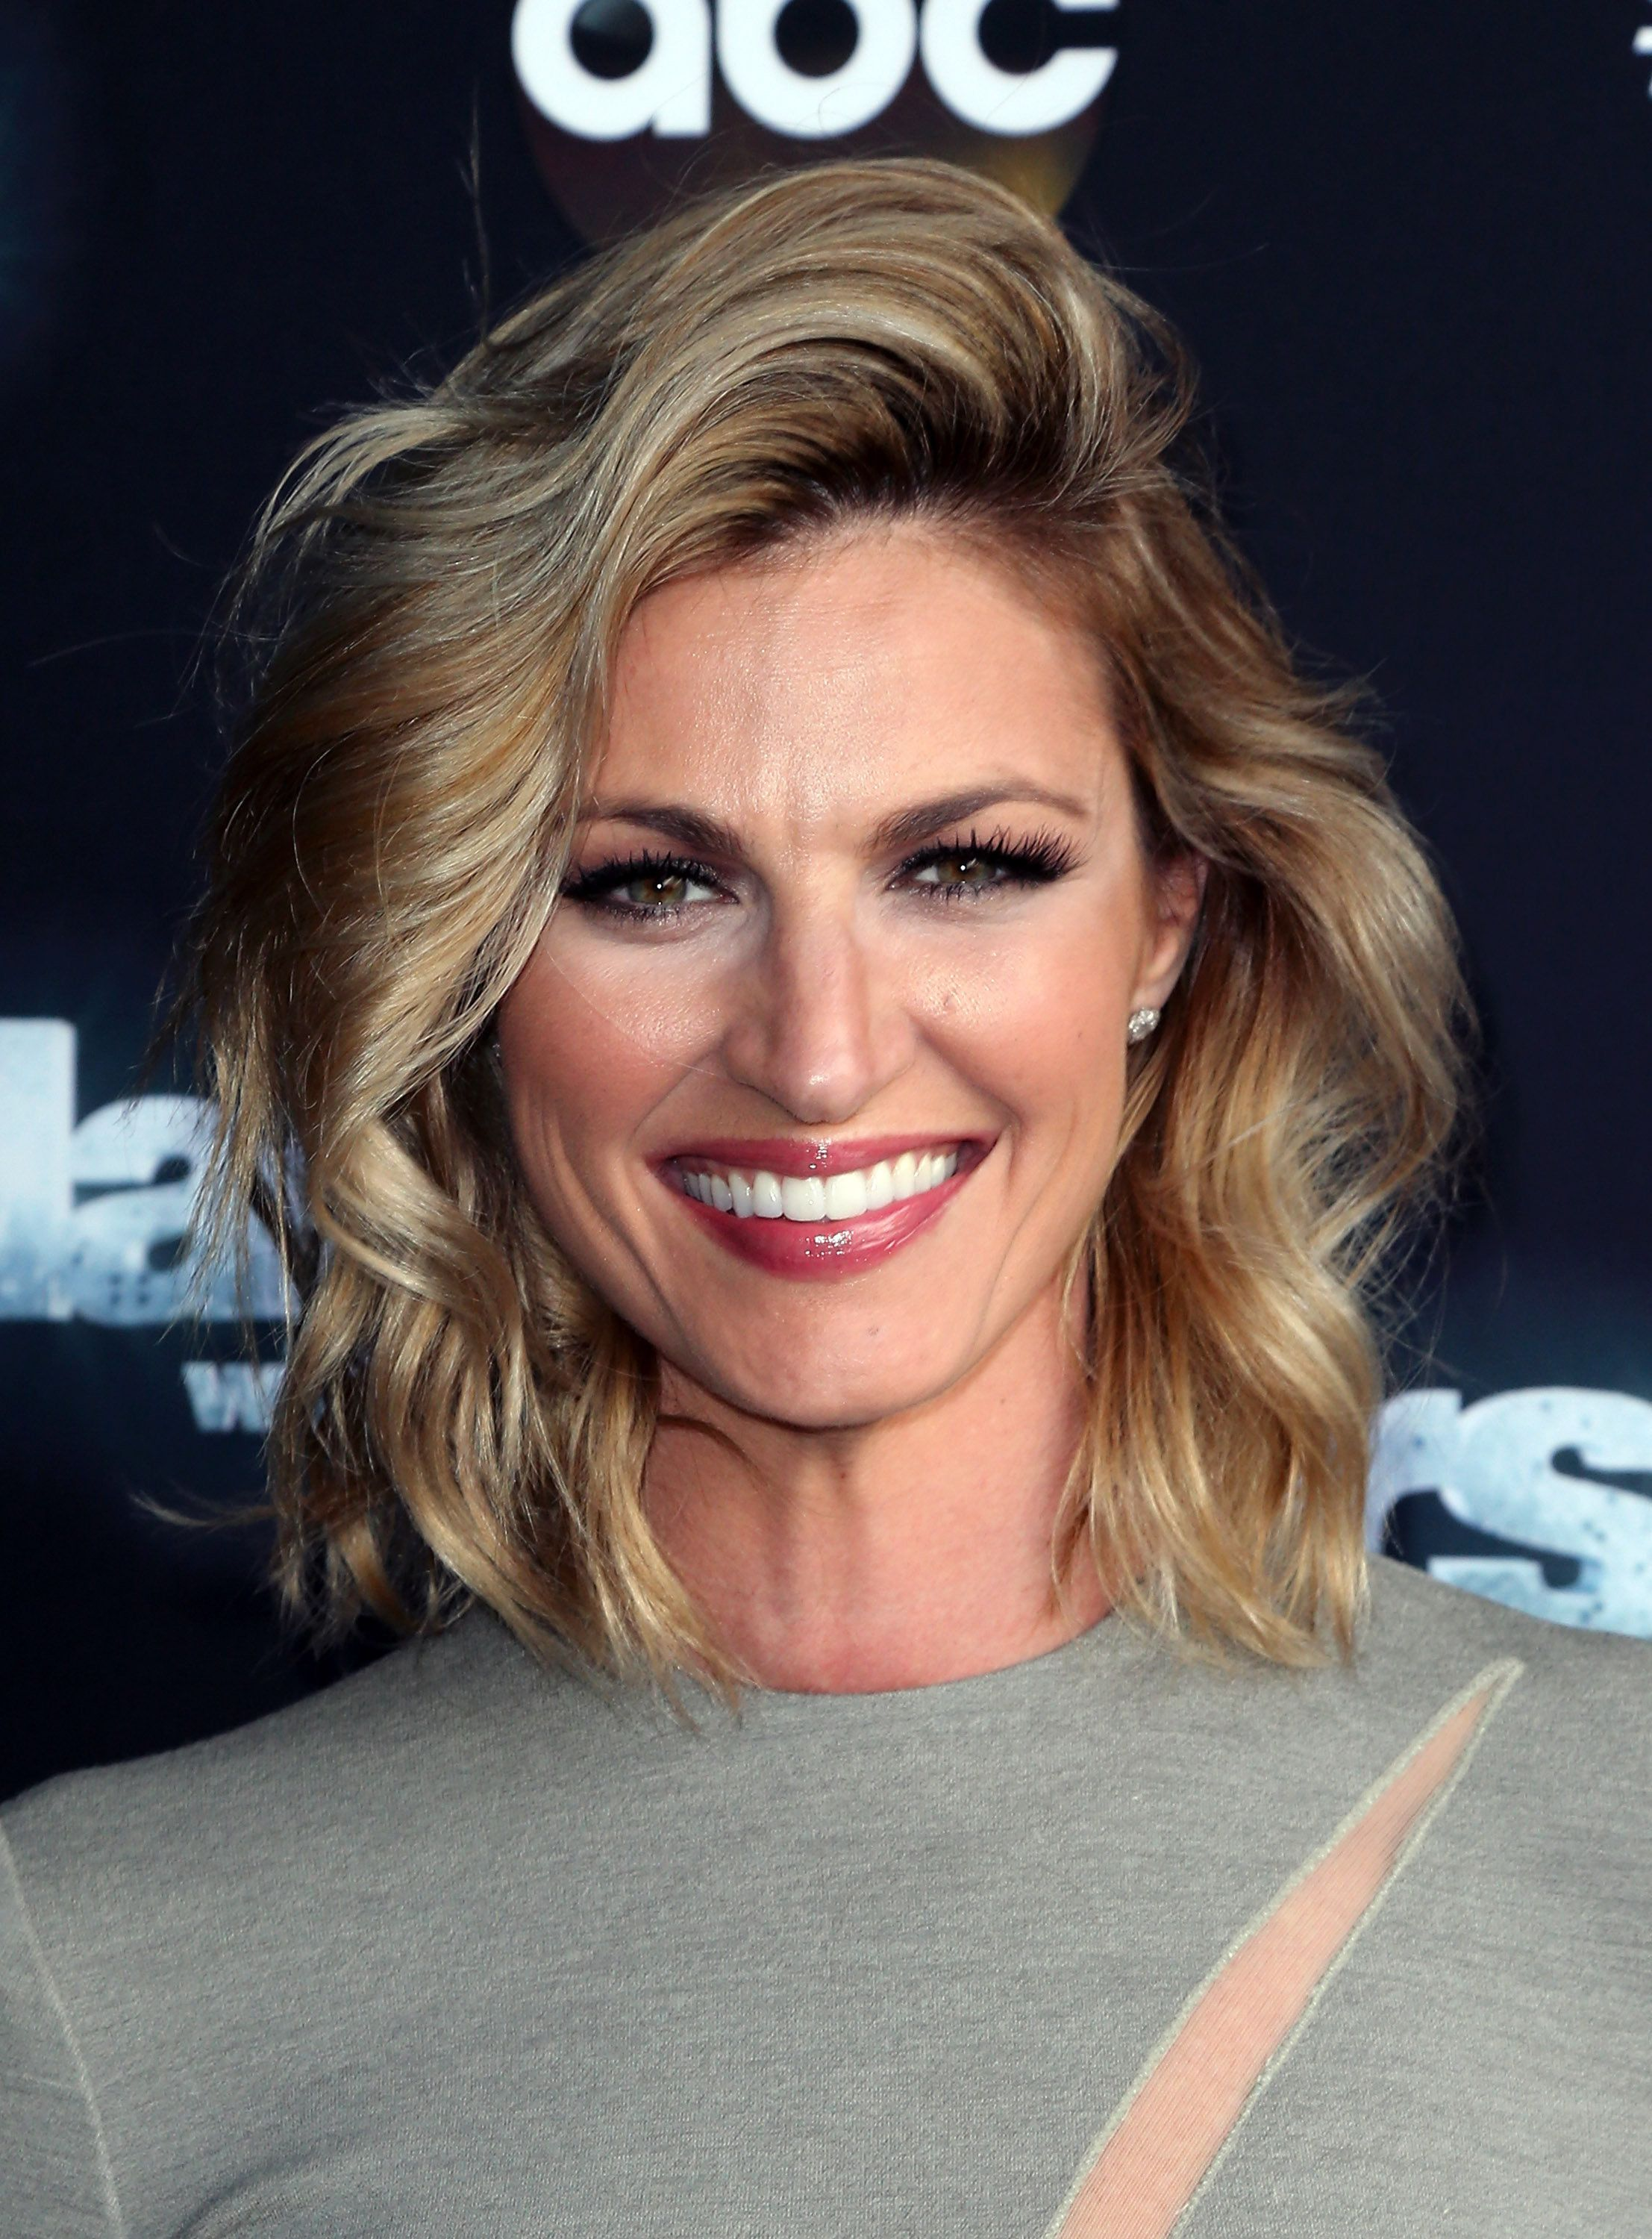 LOS ANGELES, CA - OCTOBER 05:  TV personality Erin Andrews attends 'Dancing with the Stars' Season 21 at CBS Televison City on October 5, 2015 in Los Angeles, California.  (Photo by David Livingston/Getty Images)